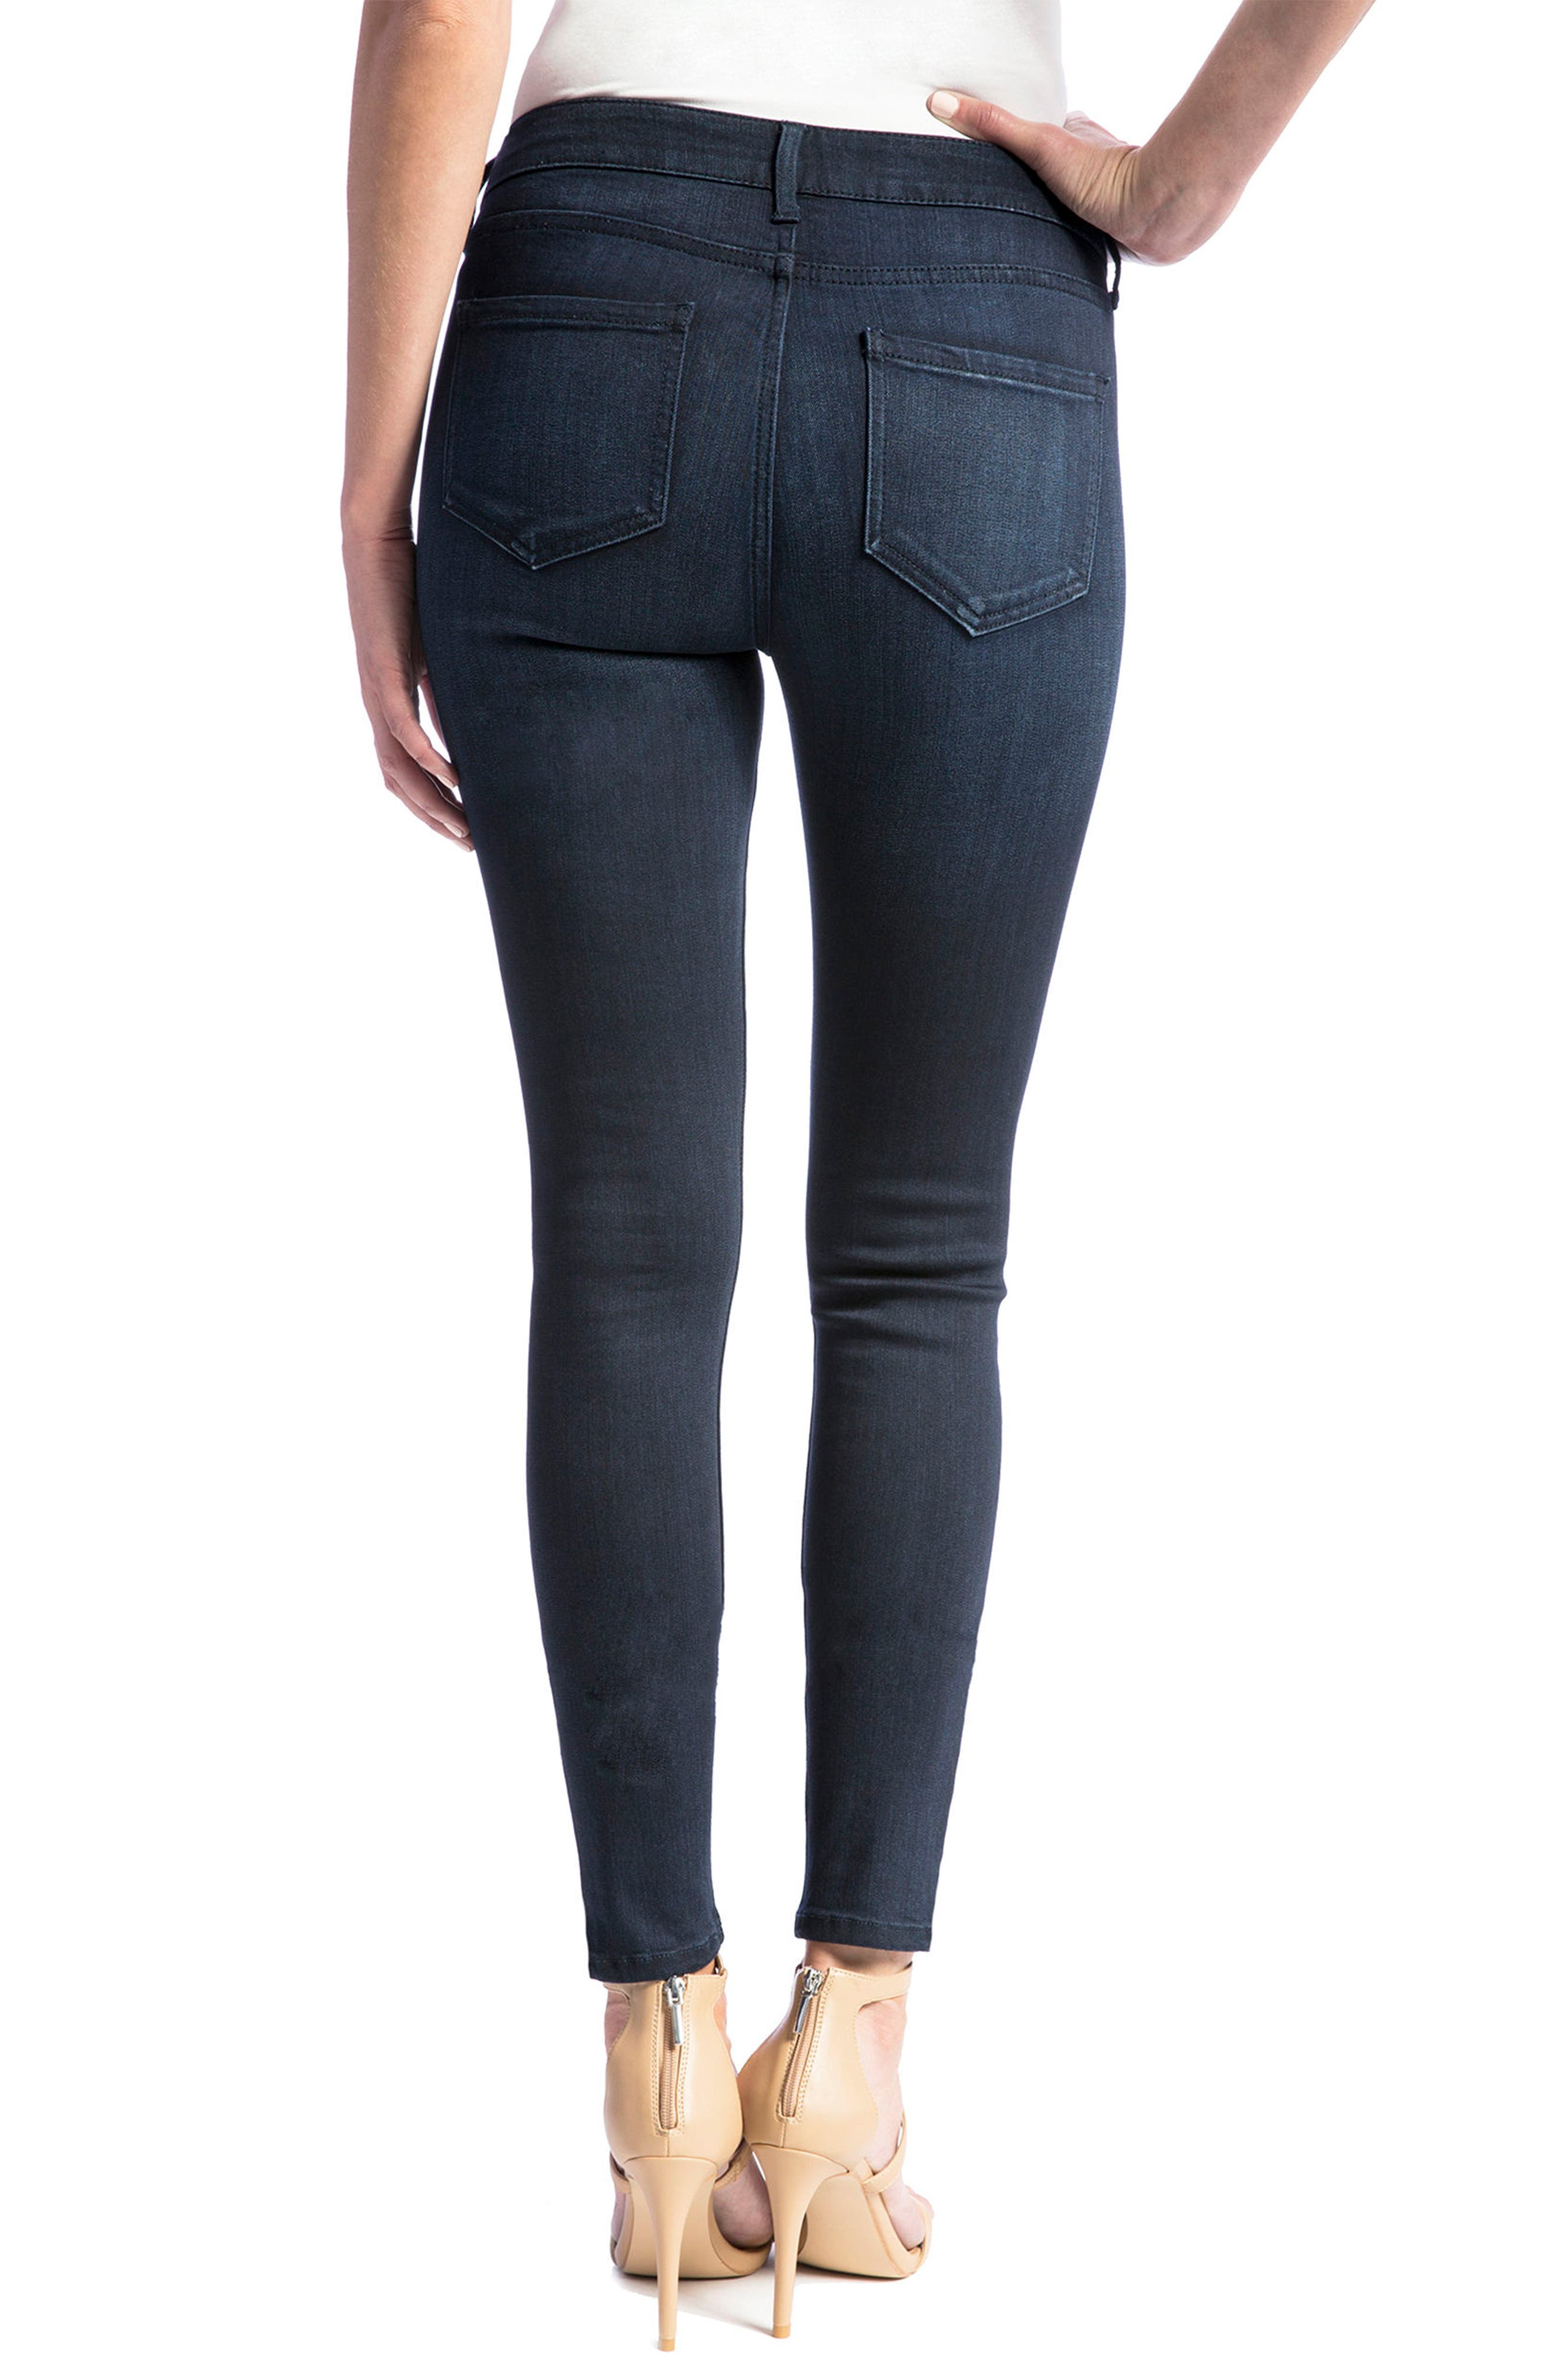 Jeans Co. Abby Stretch Skinny Jeans,                             Alternate thumbnail 3, color,                             Stone Wash